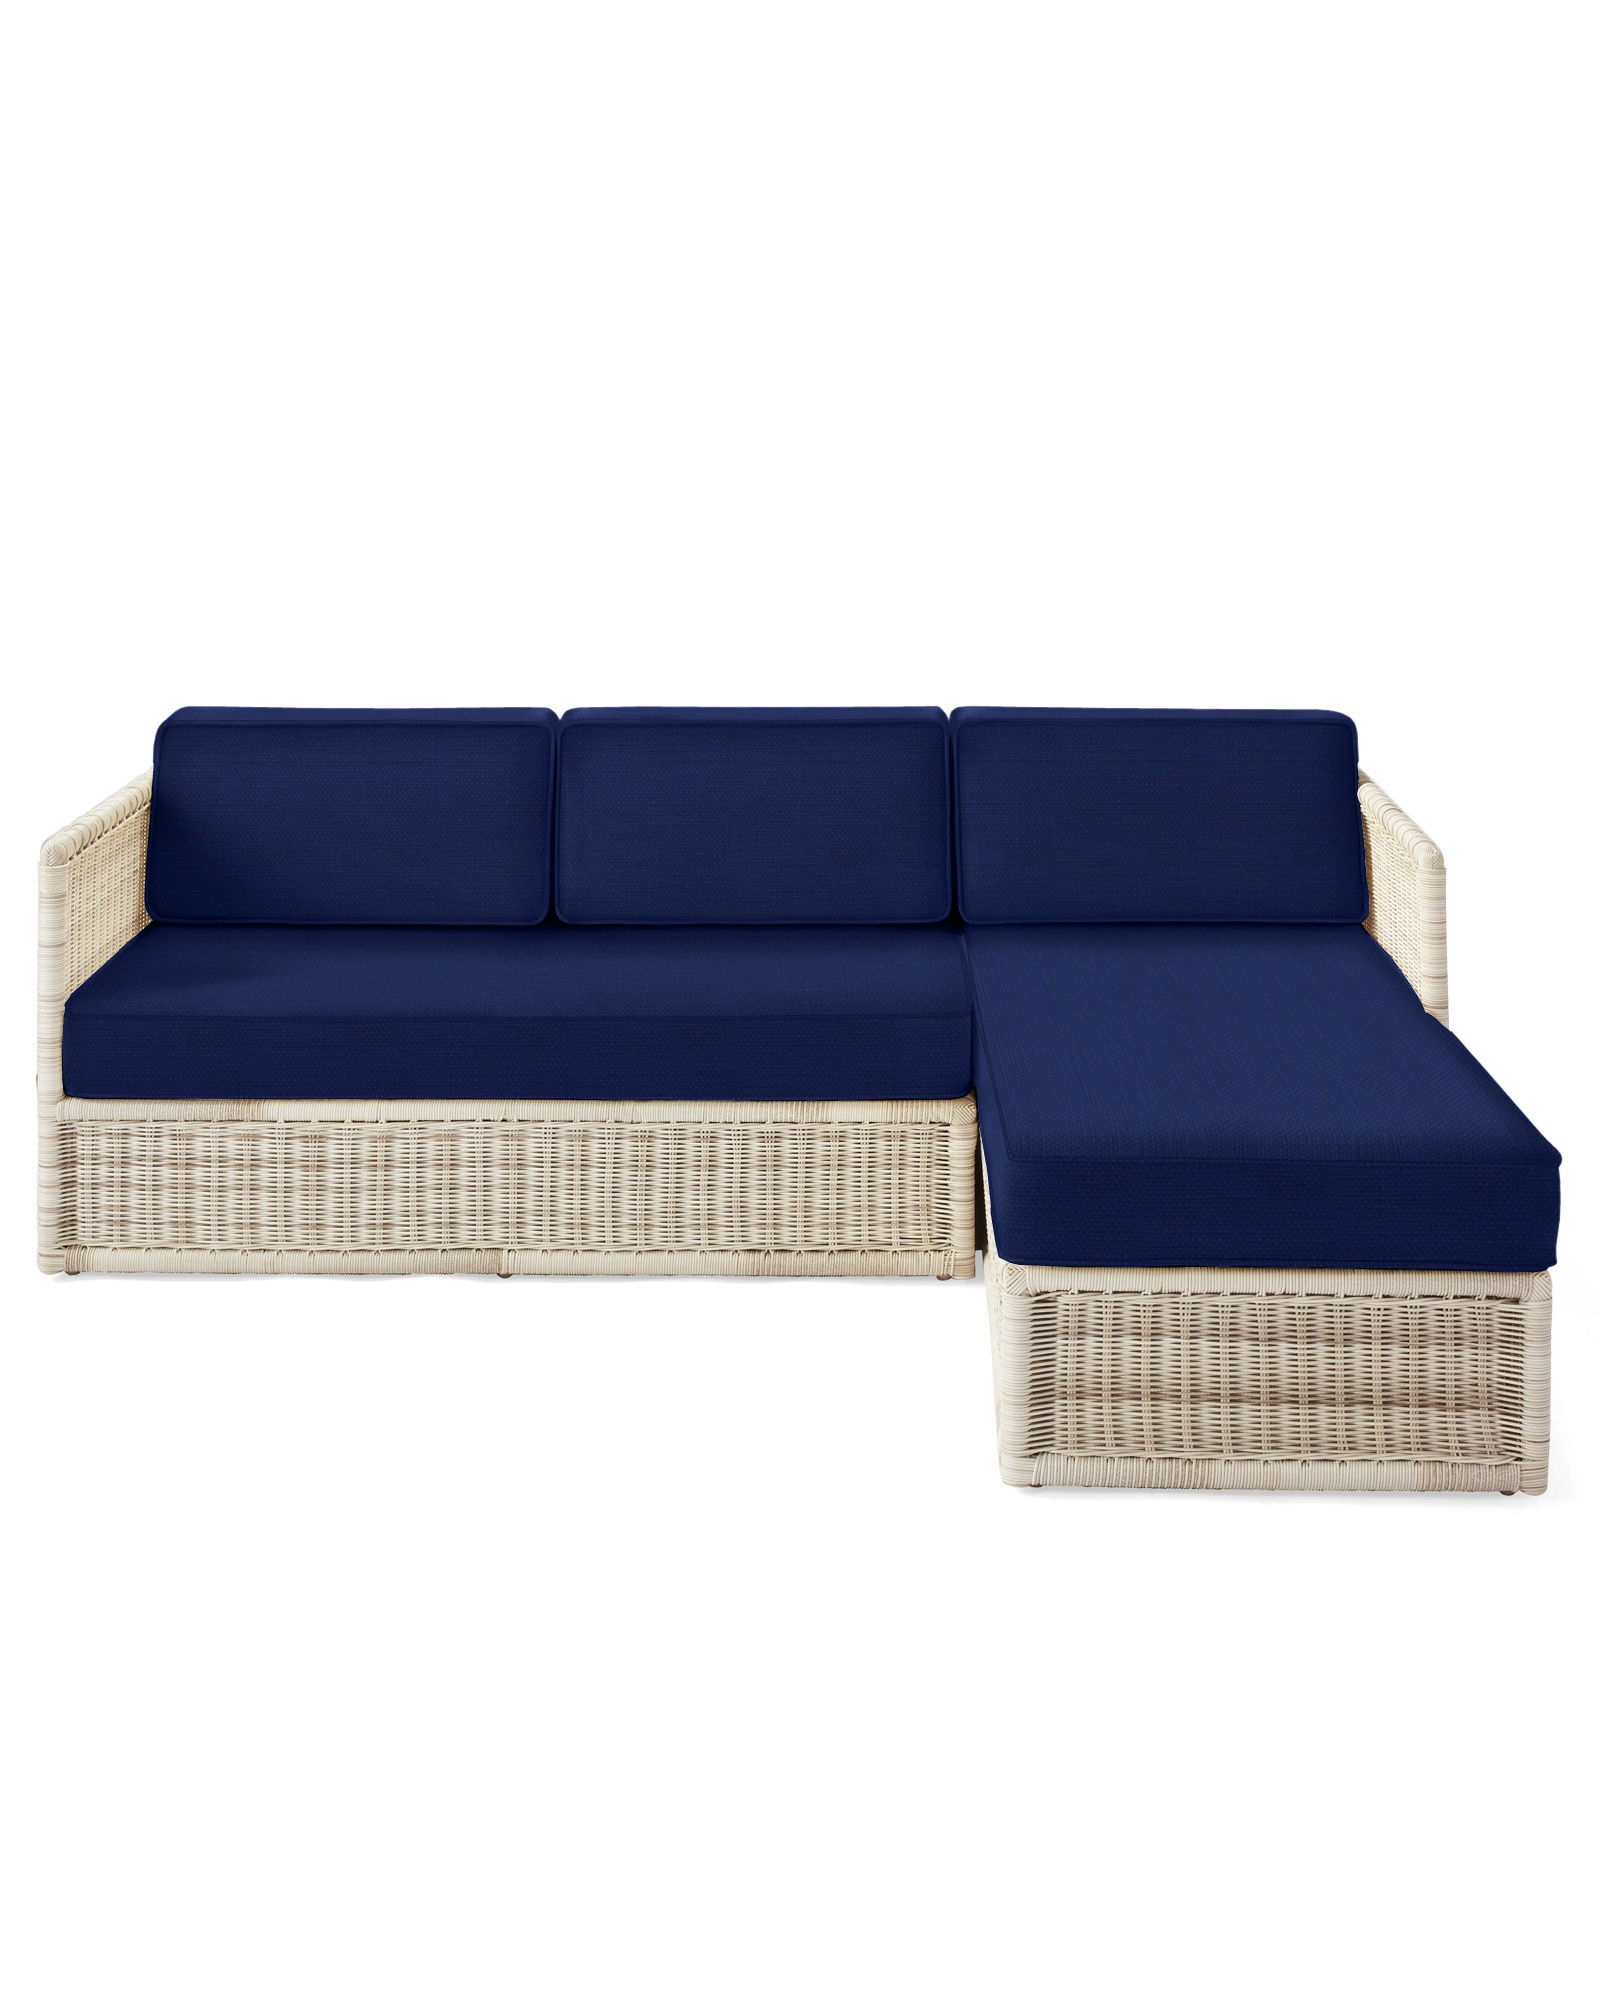 Cushion Cover for Pacifica Chaise Sectional, Perennials Basketweave Navy